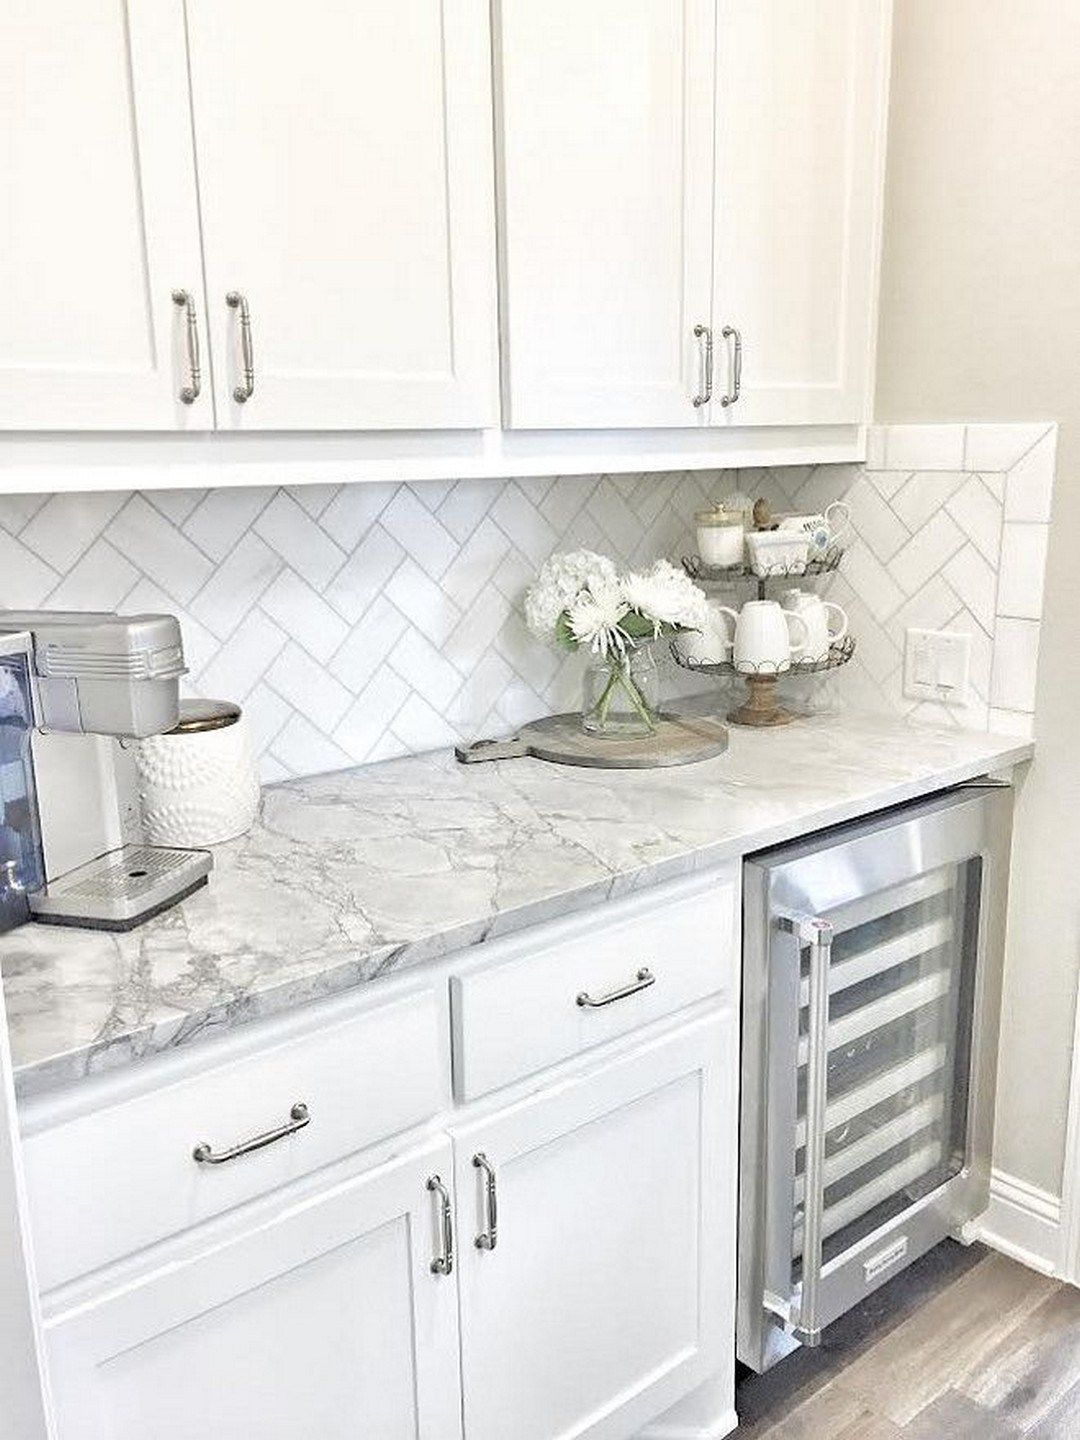 99 Elegant Subway Tile Backsplash Ideas For Your Kitchen Or Bathroom ...